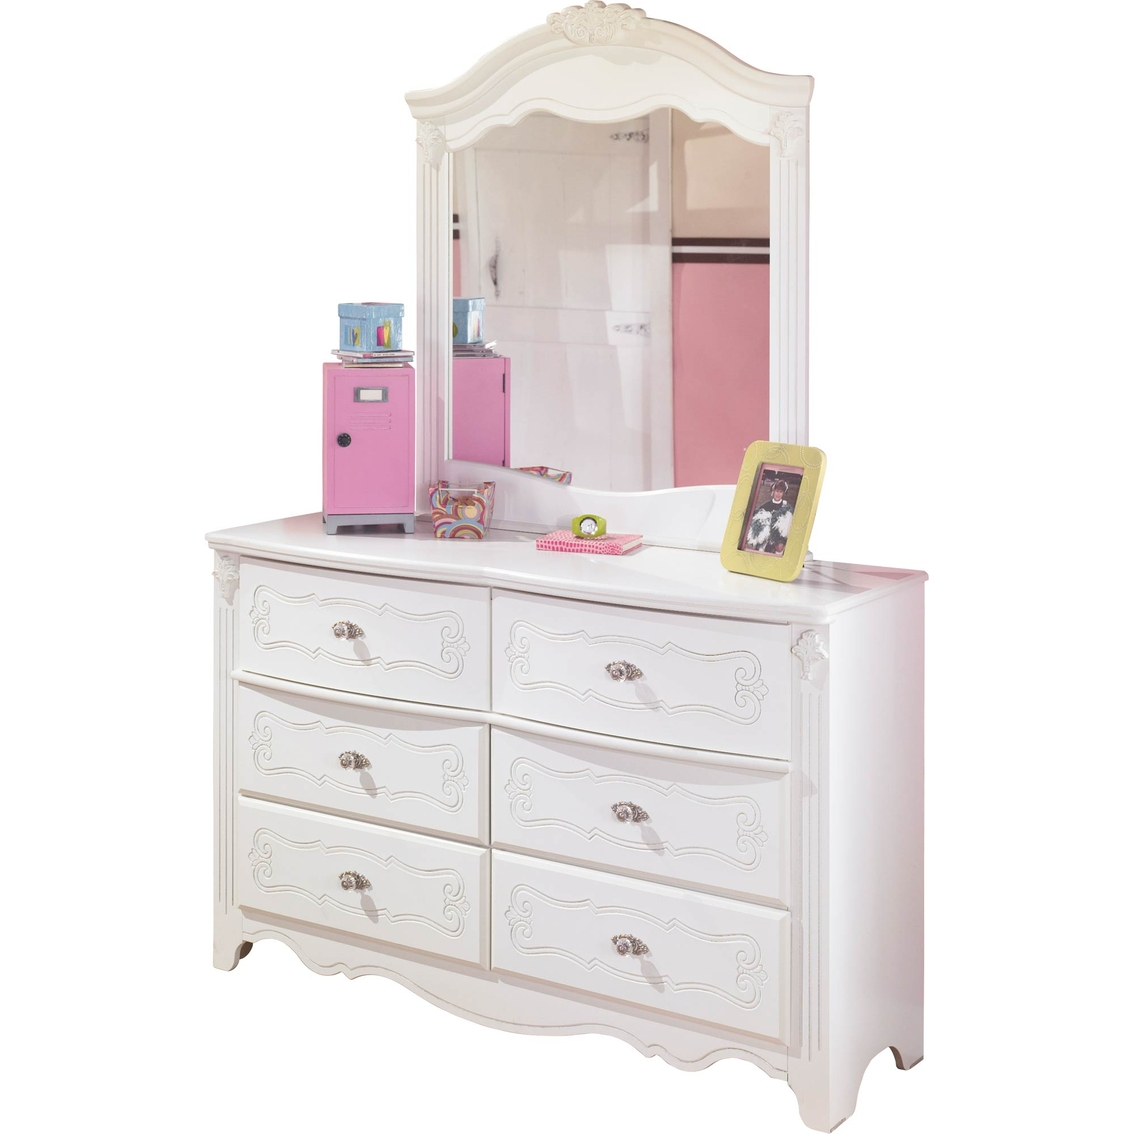 ashley exquisite dresser and mirror dressers home